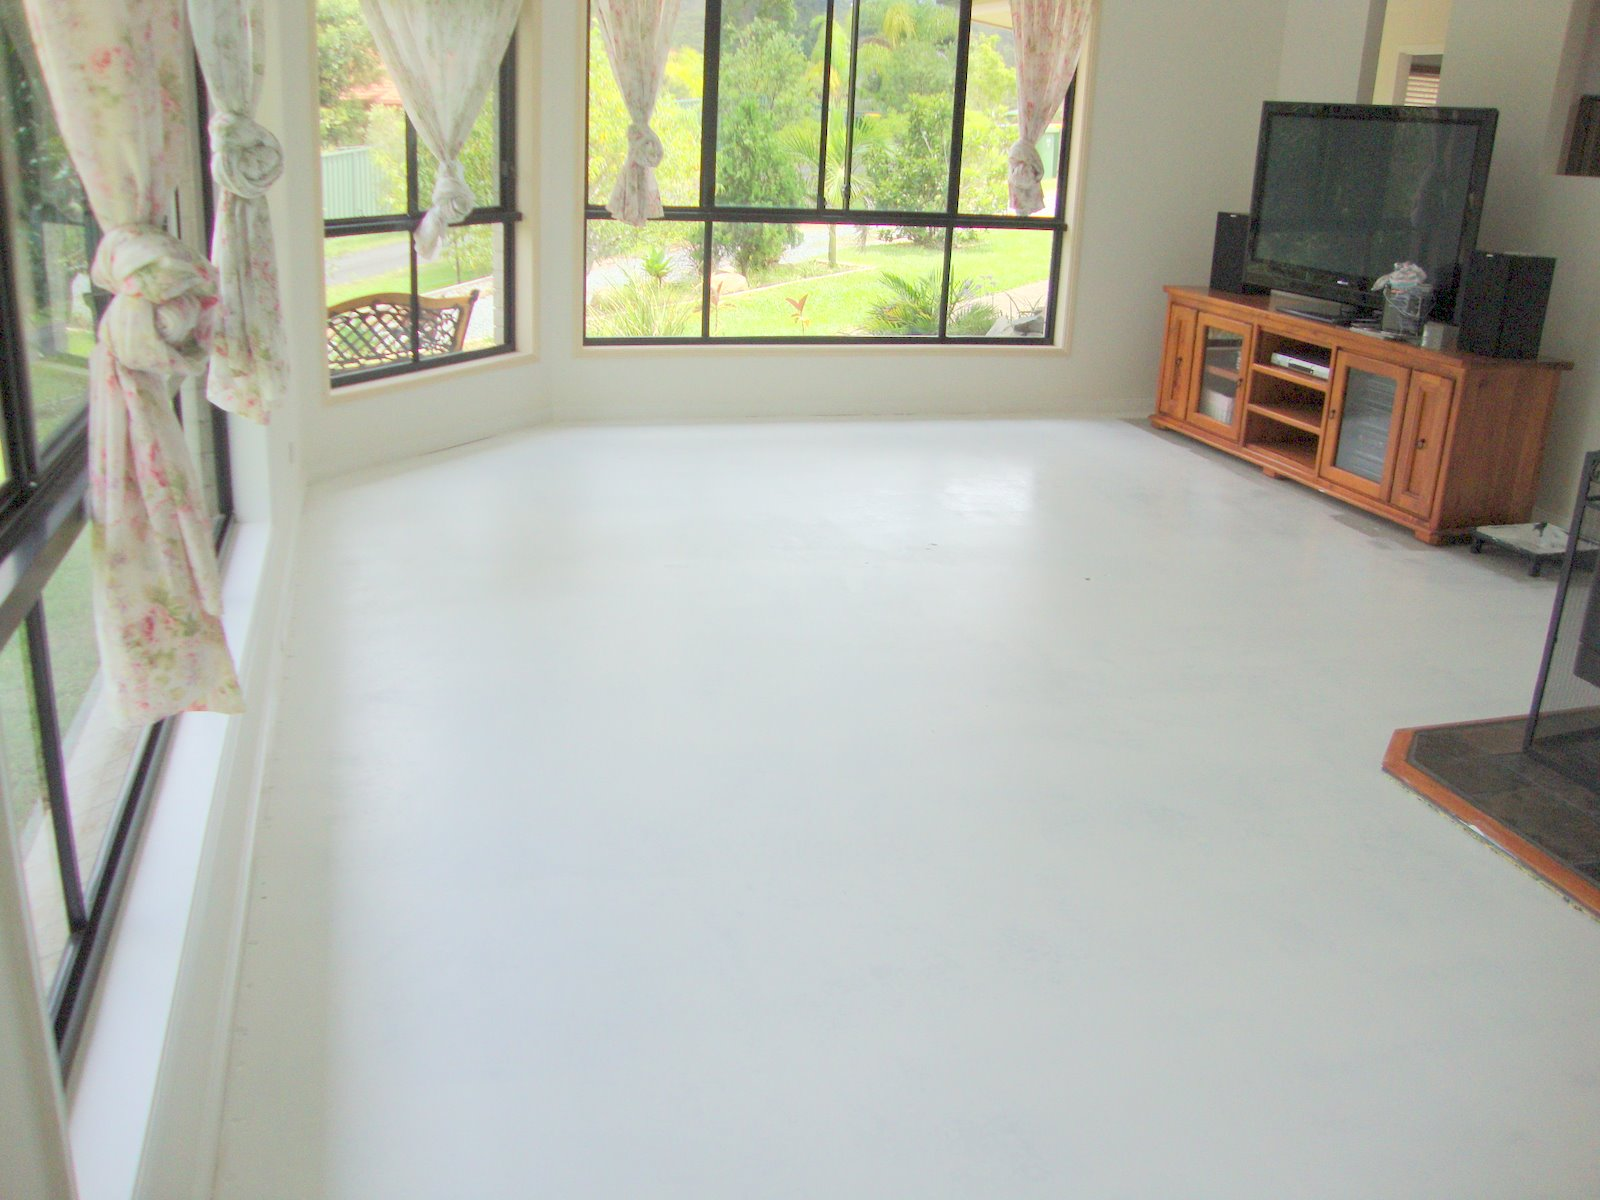 Flooring In House : Painted concrete floors